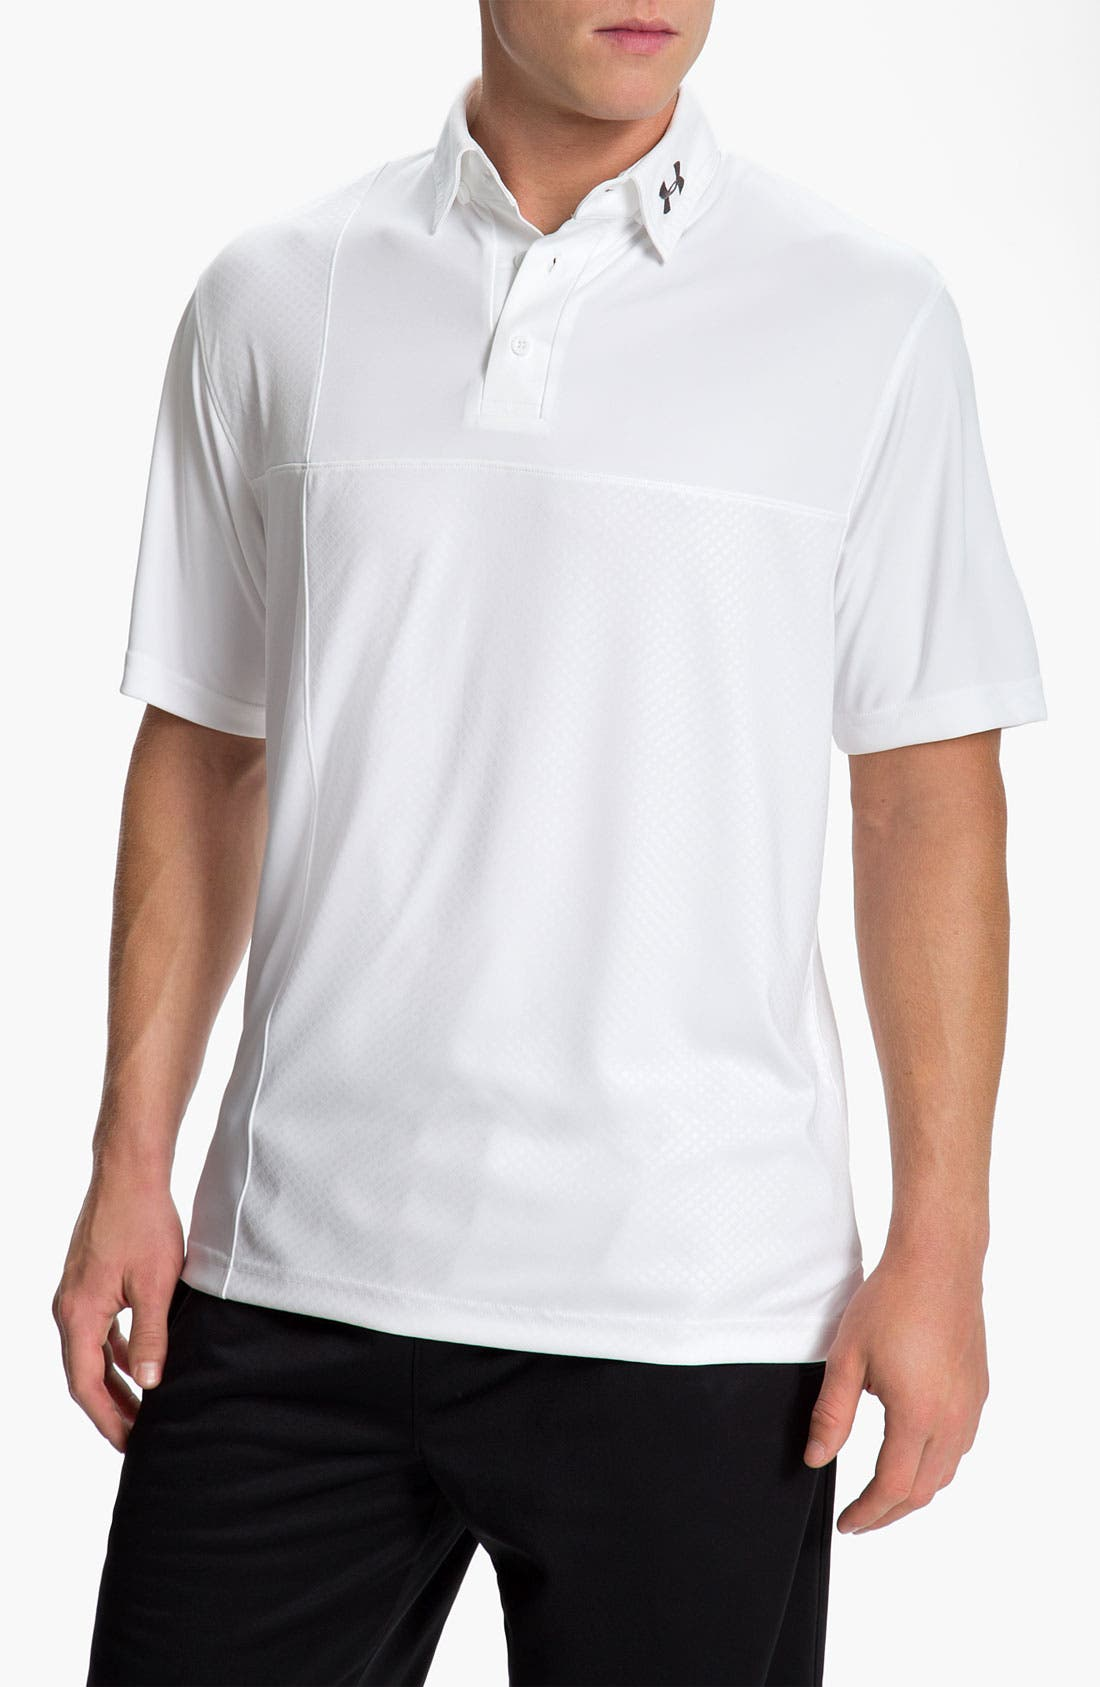 Main Image - Under Armour HeatGear® UV Protection Performance Polo